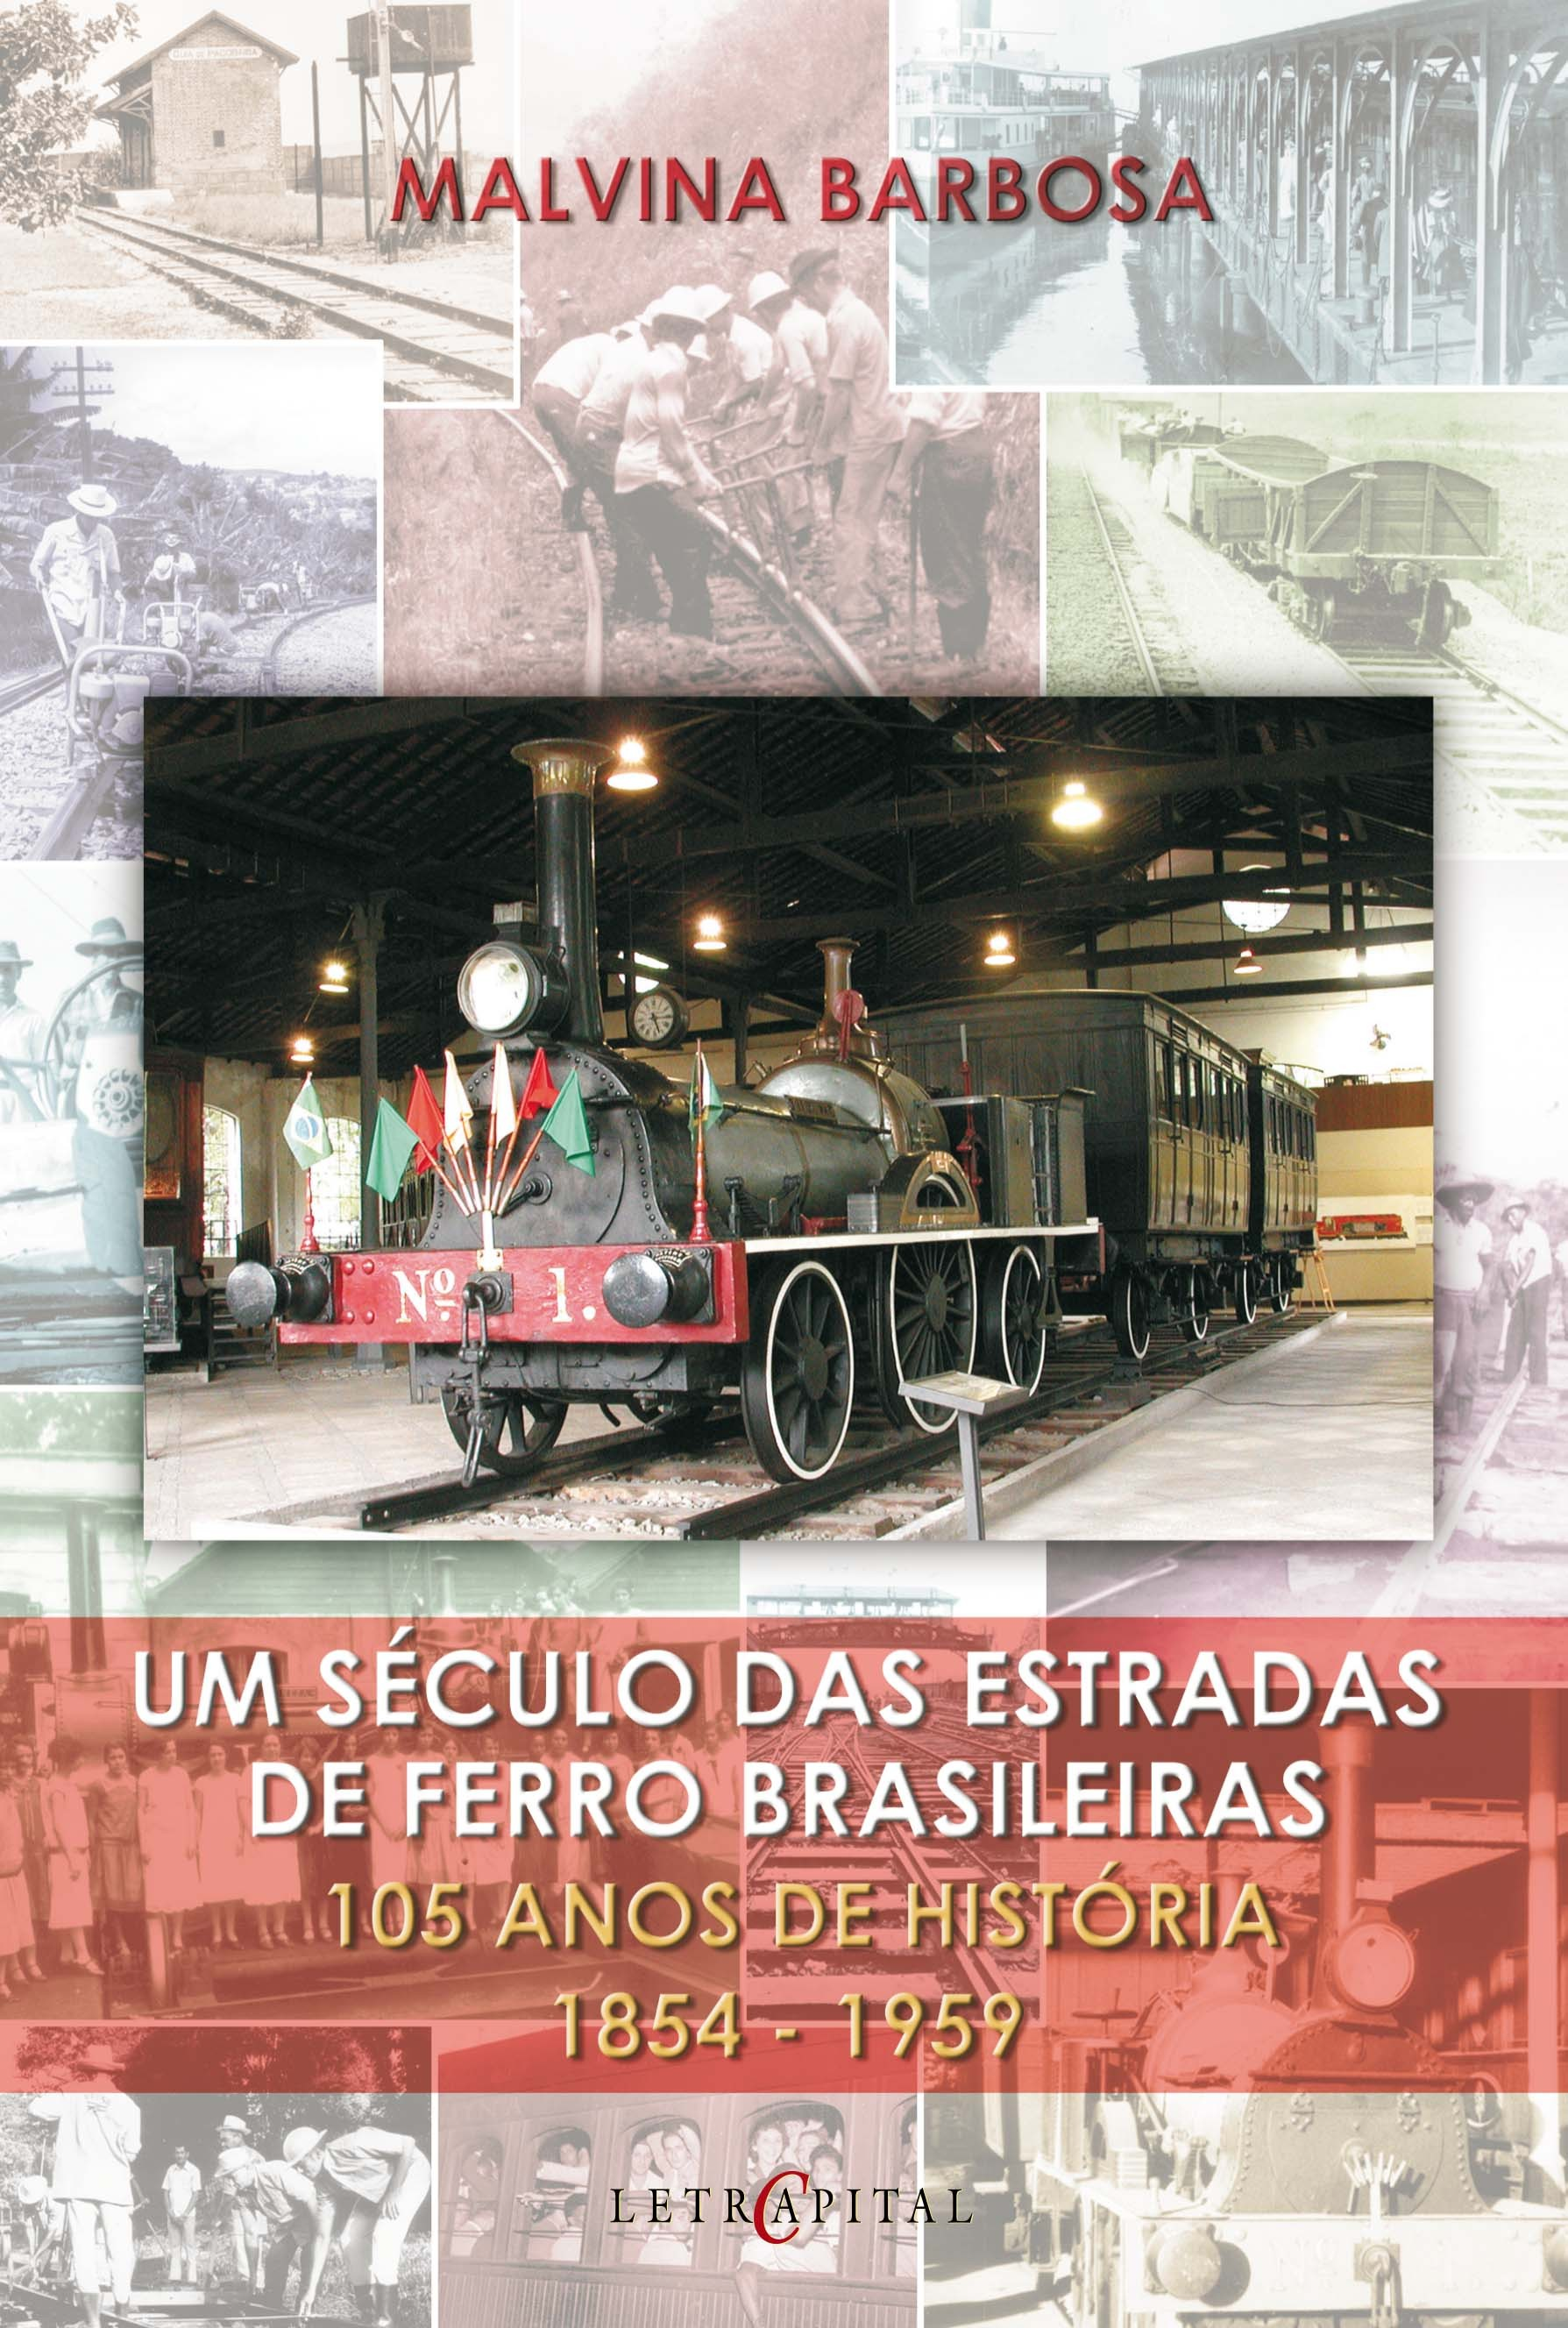 Um século das estradas de ferro brasileiras - 105 anos de história 1854-1959